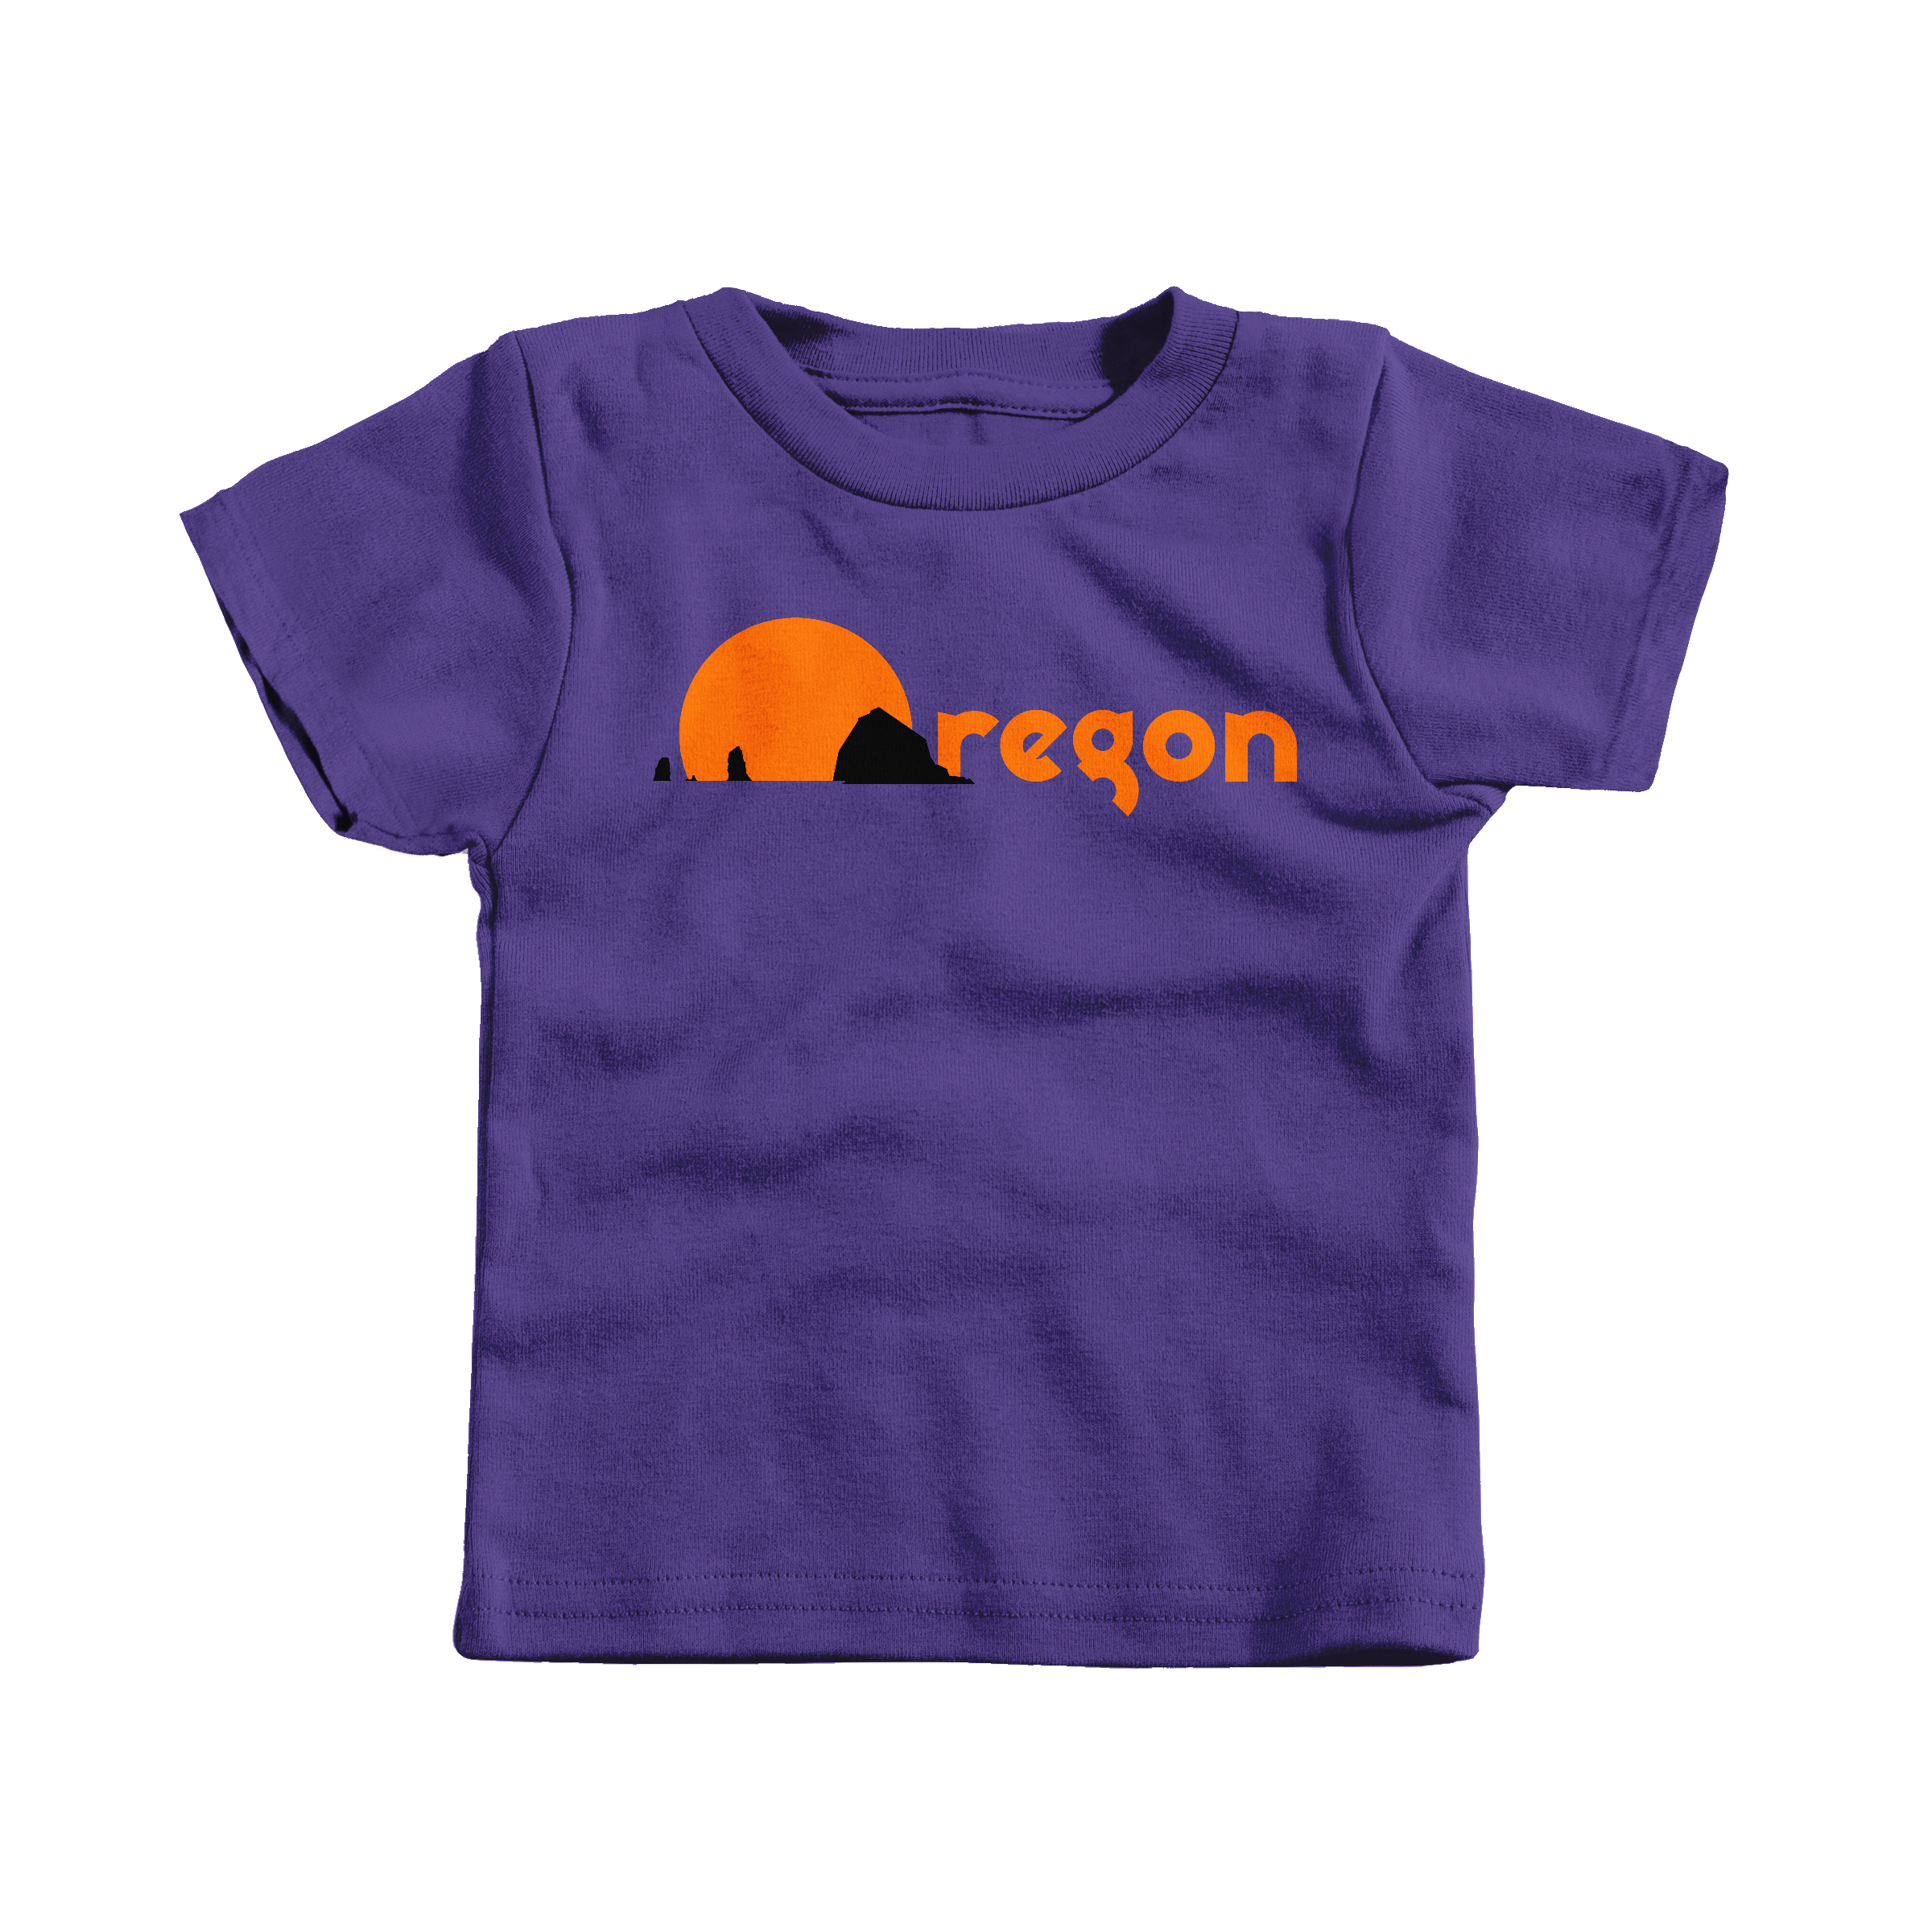 Oregon Sunset Purple (T-Shirt)